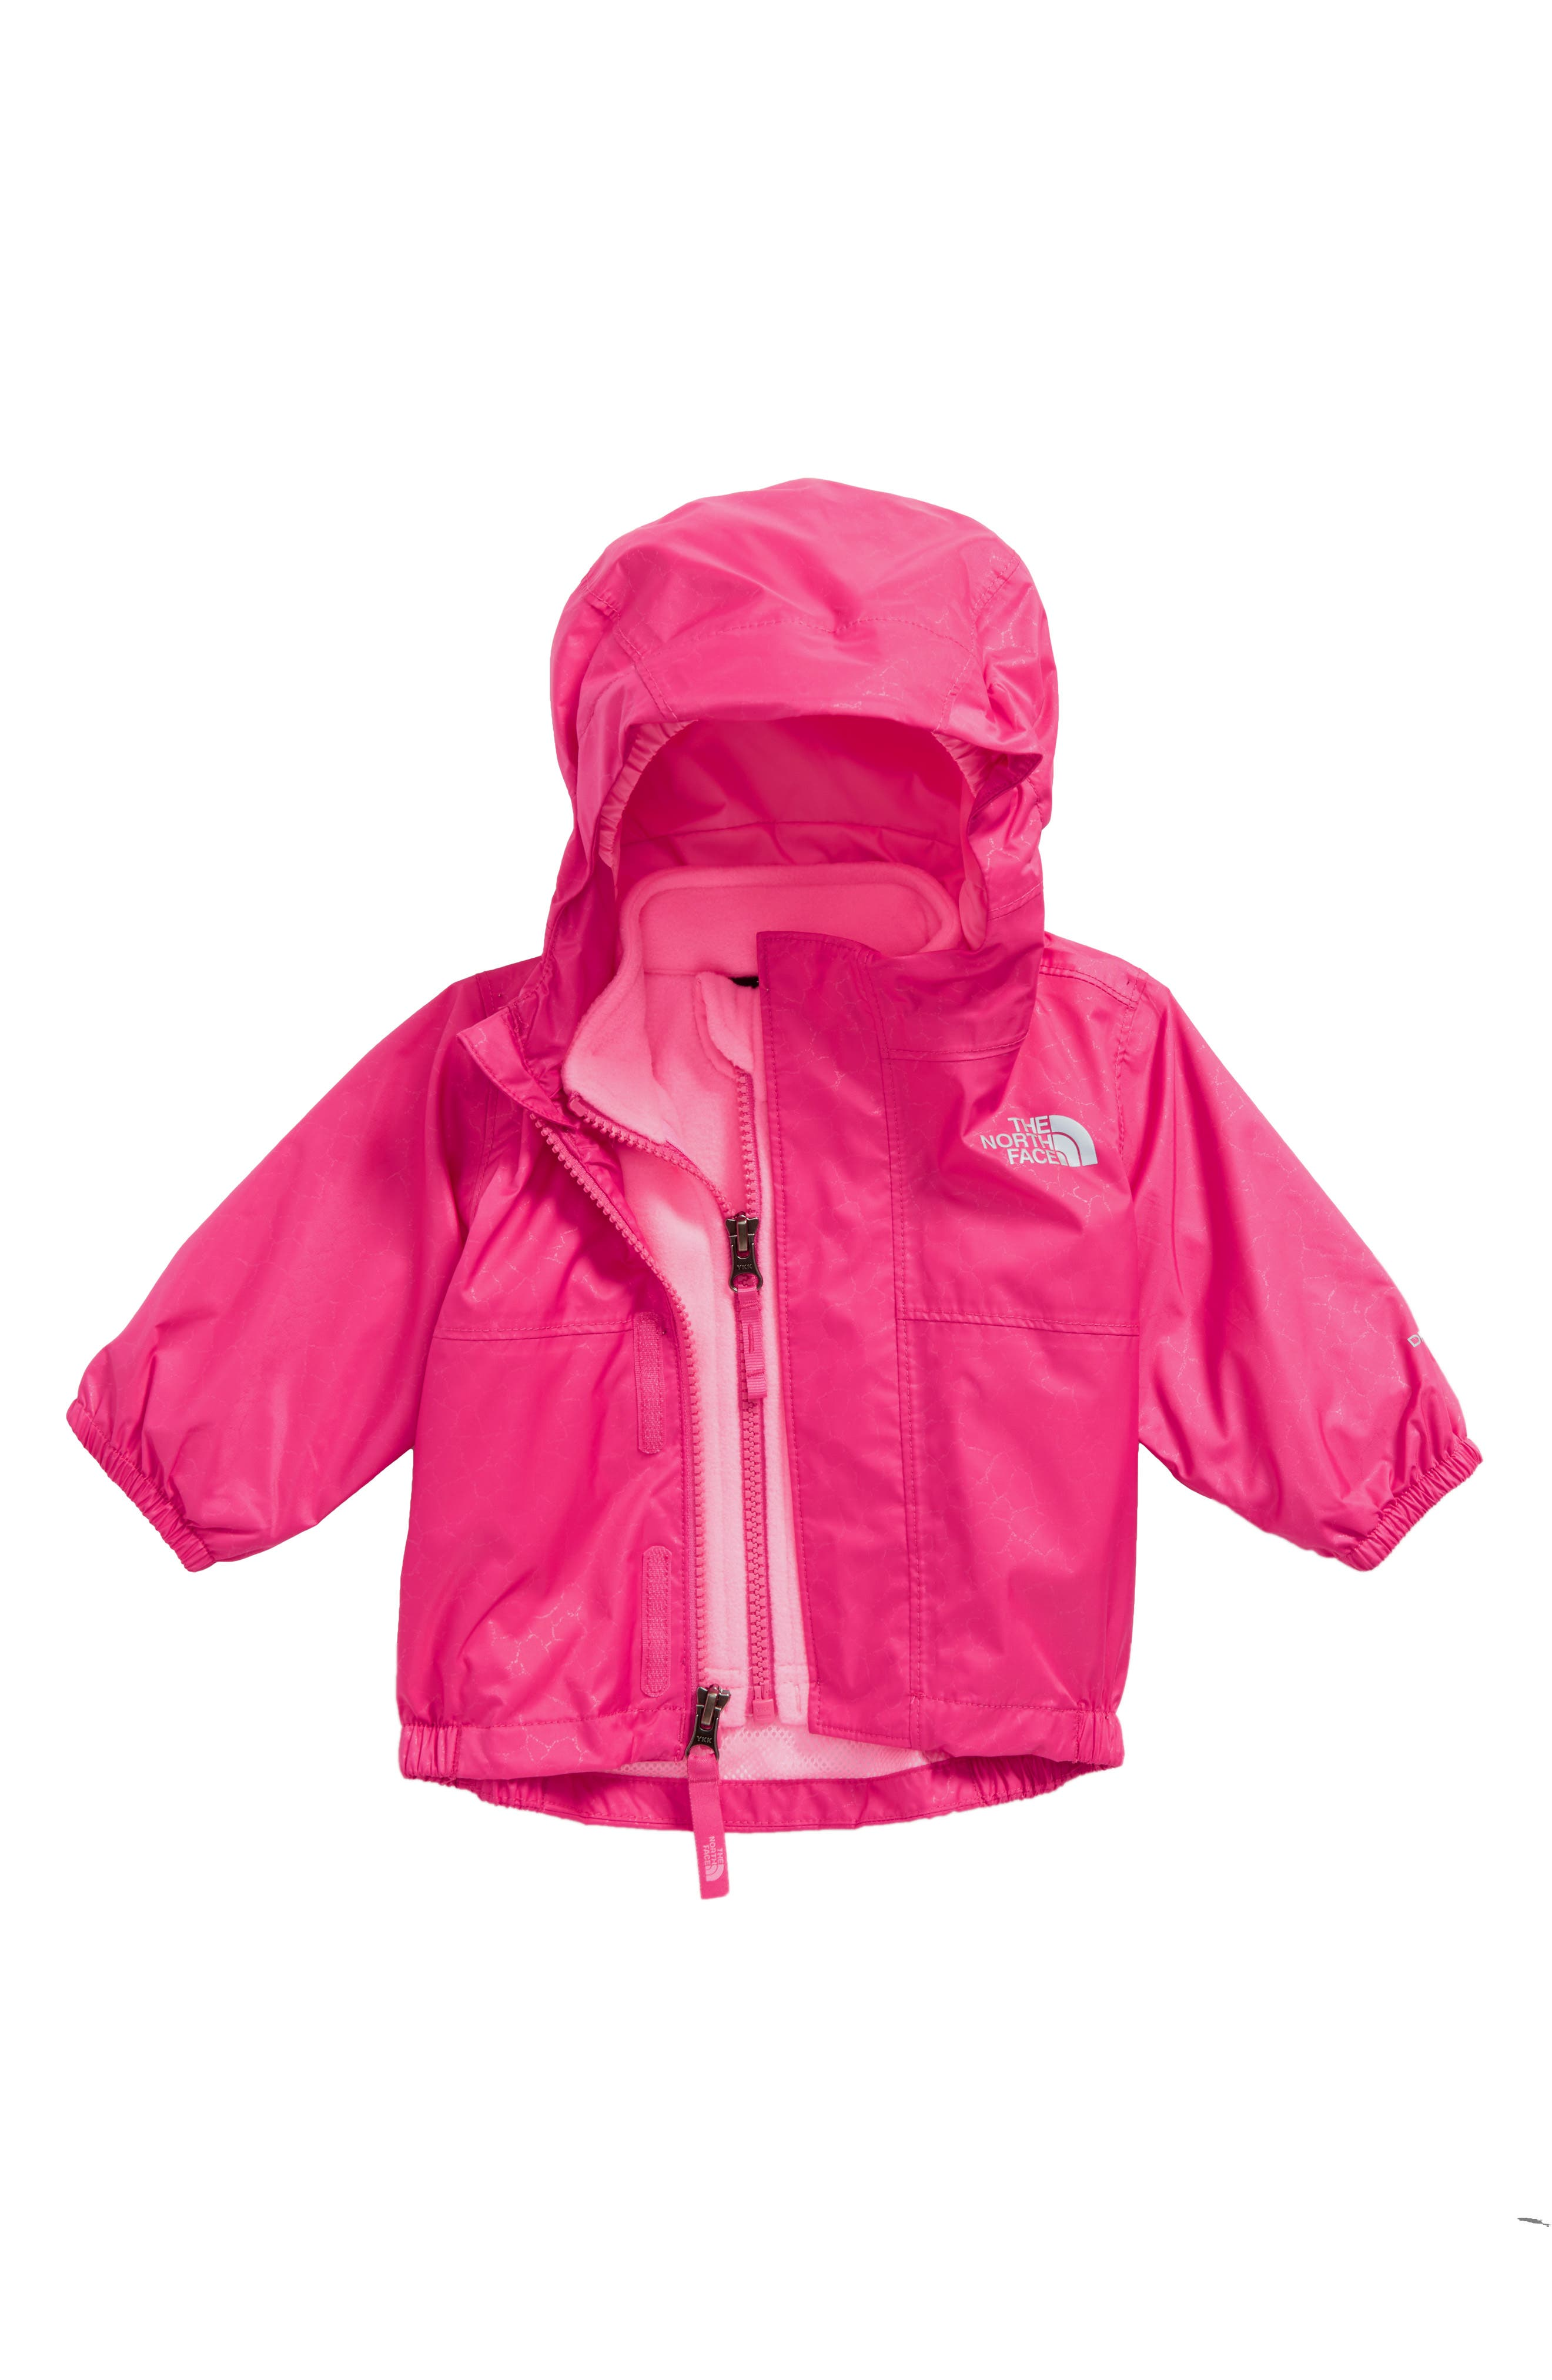 Stormy Rain TriClimate<sup>®</sup> Waterproof & Windproof 3-in-1 Jacket,                         Main,                         color, 651